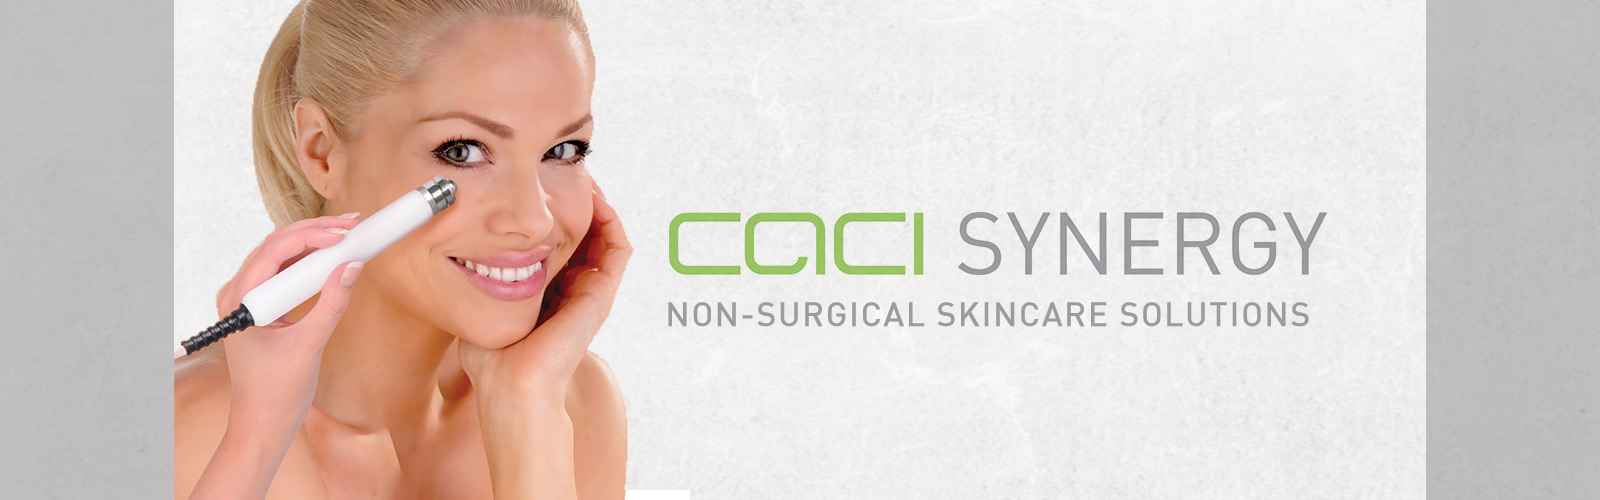 Shai-hair-and-beauty-CACI-homepage